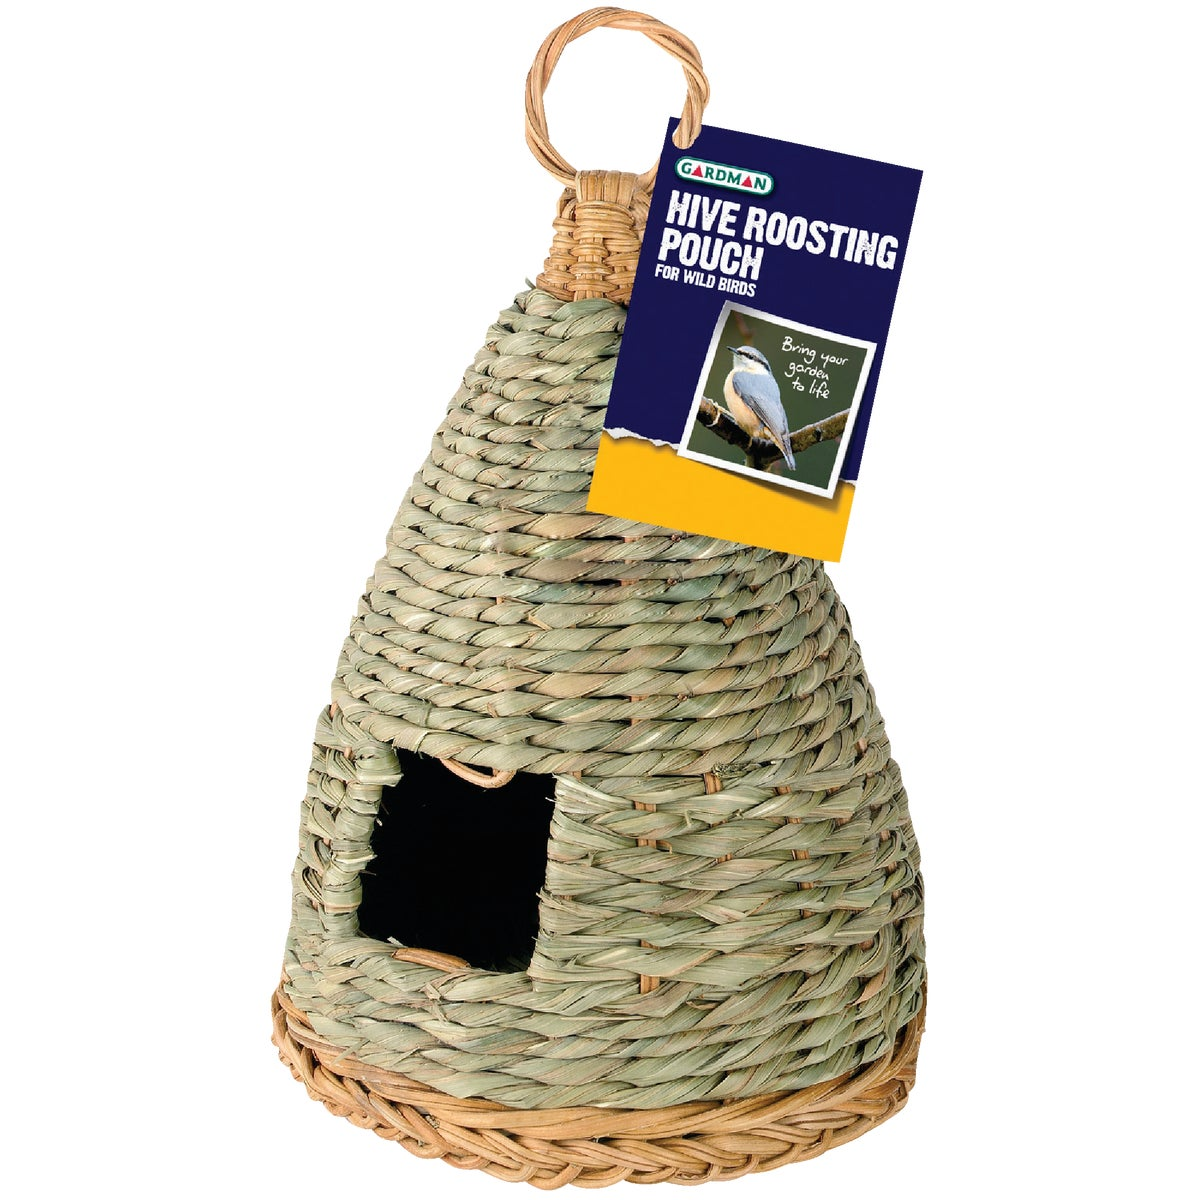 HIVE ROOSTING POCKET - BA02034 by Gardman Usa Inc